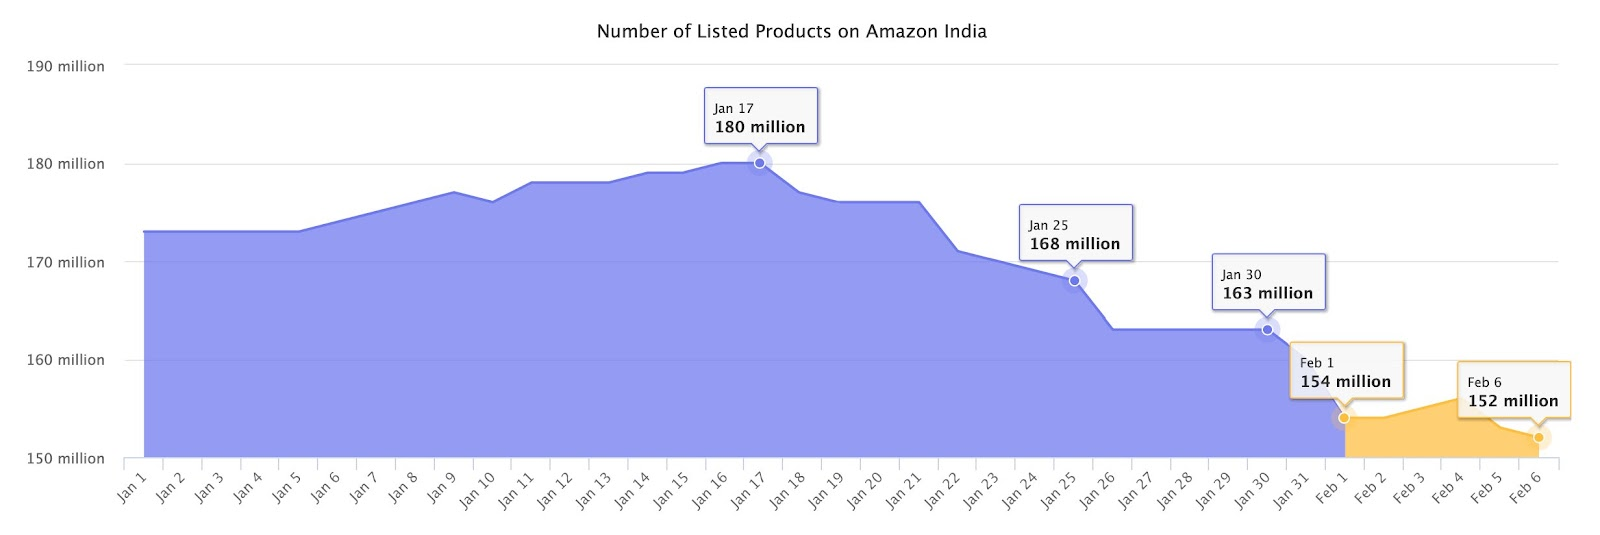 Number of Listed Products on Amazon India